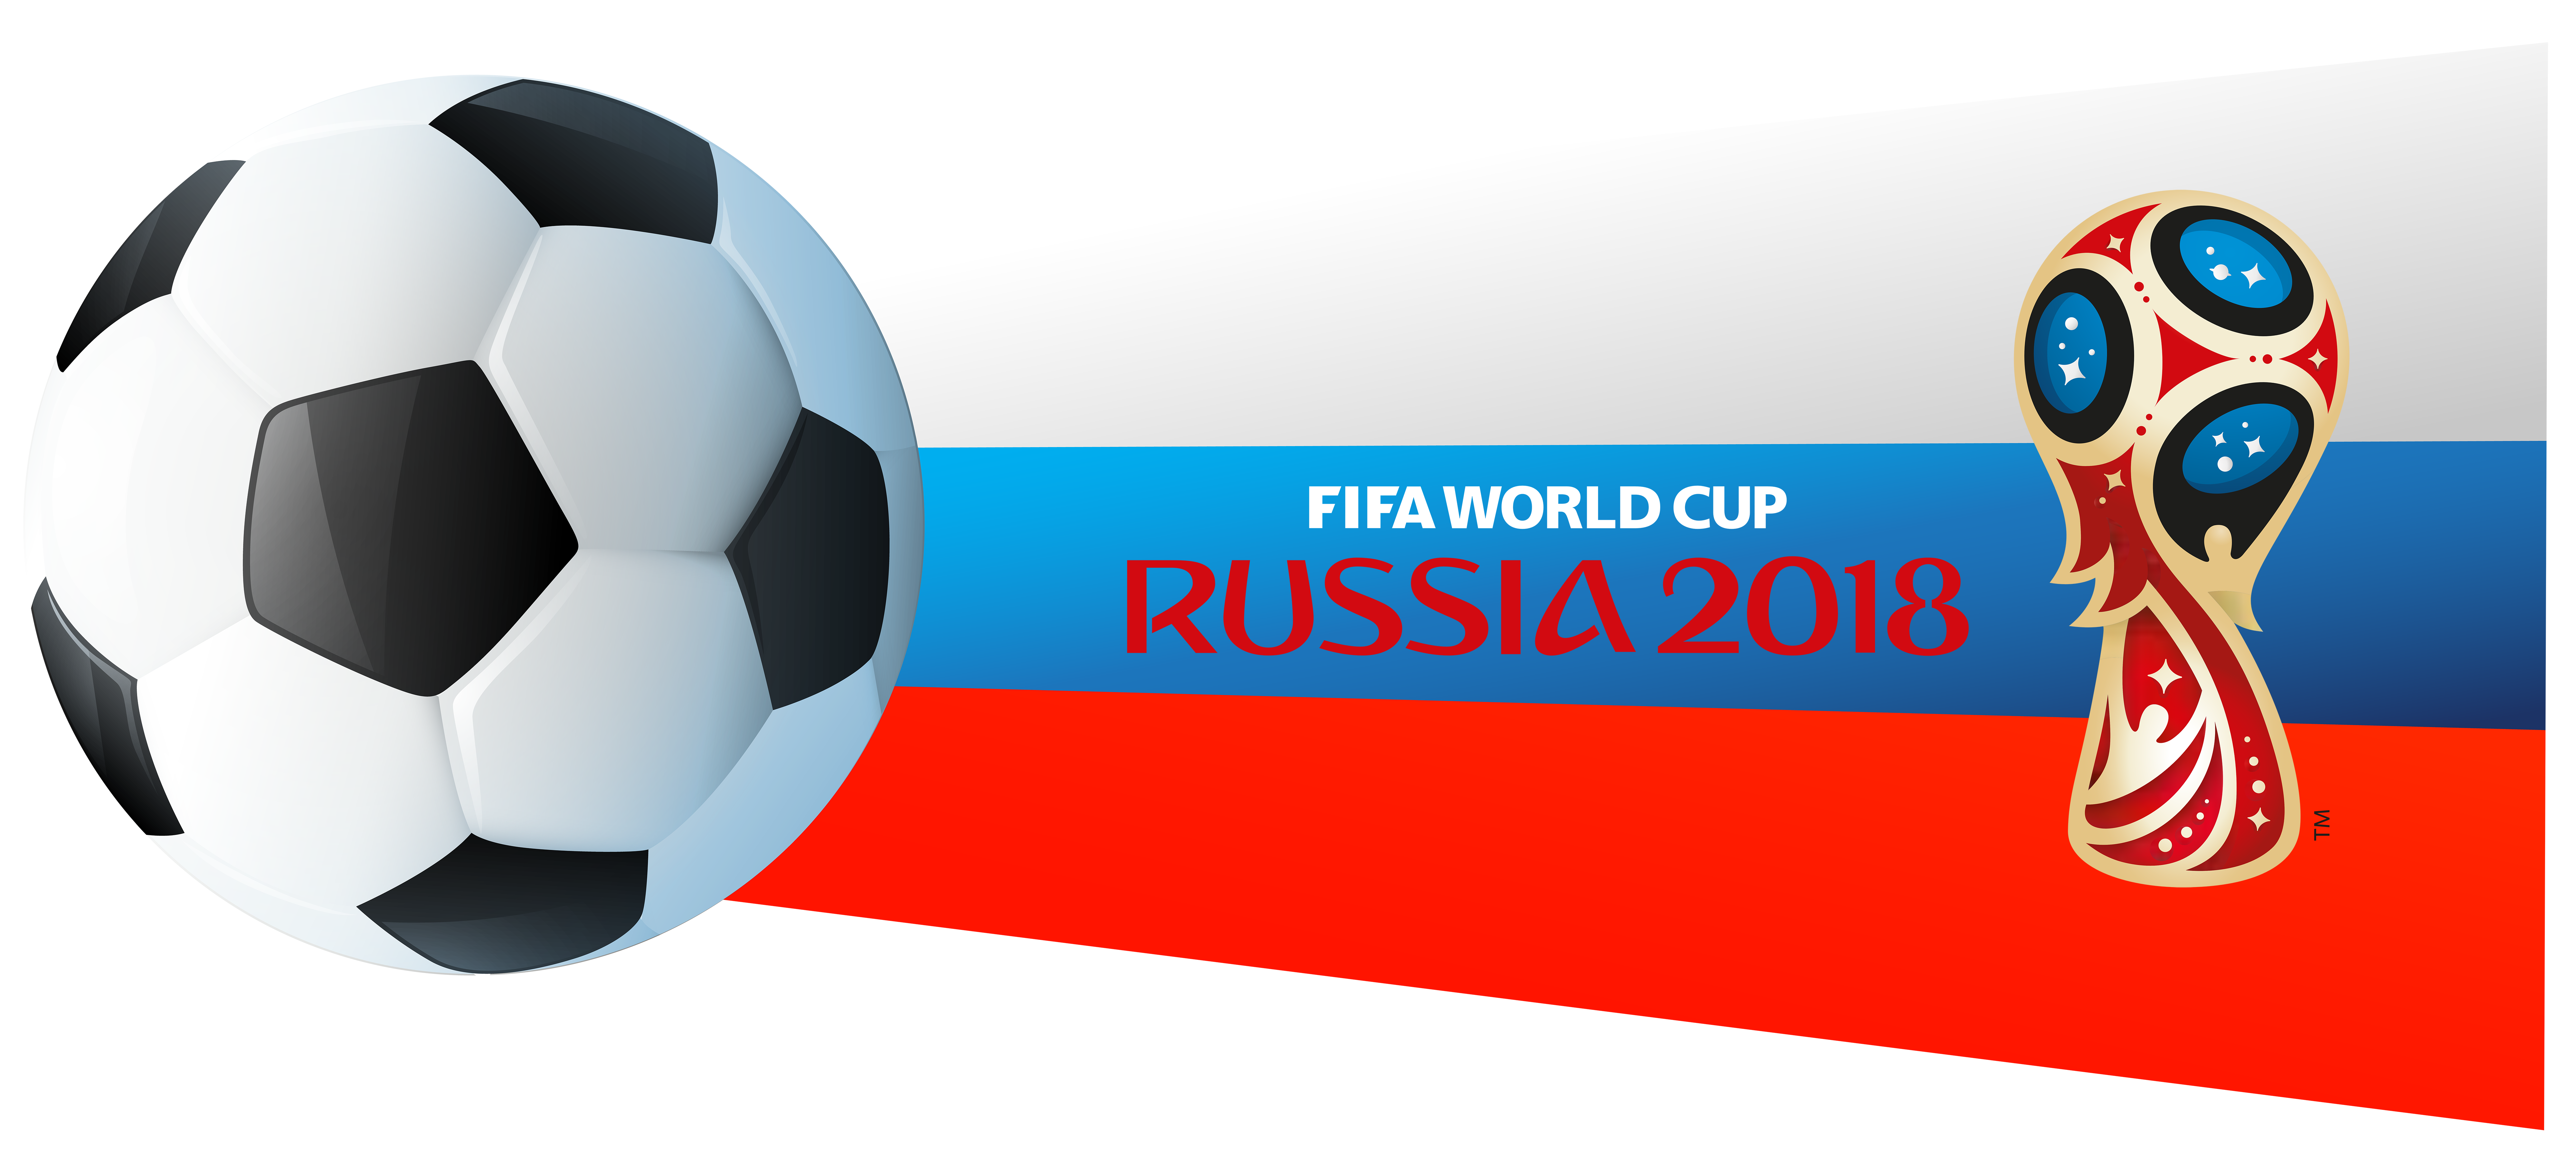 World Cup Russia 2018 PNG Clip Art Image.